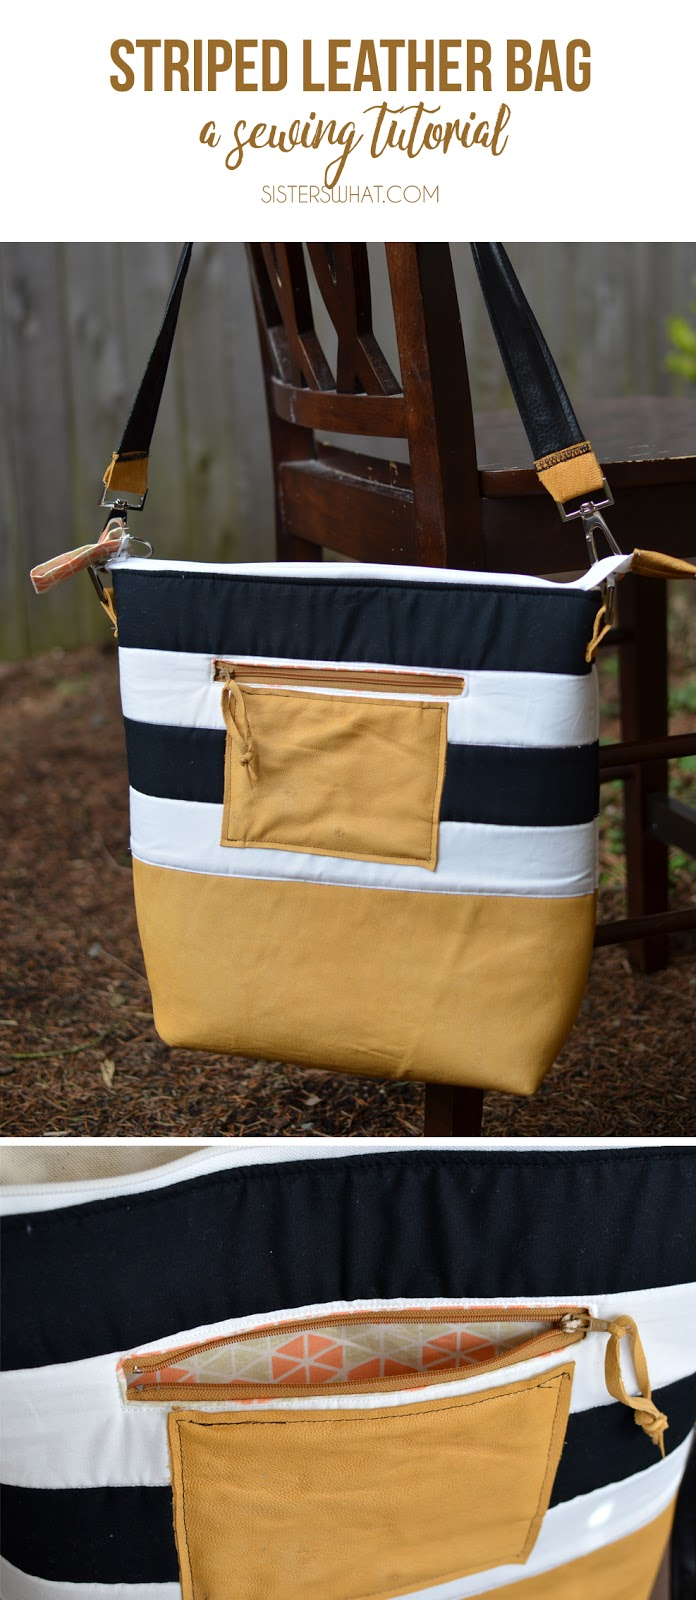 a  diaper bag or an adventure every day bag; made out of leather. An easy sewing tutorial